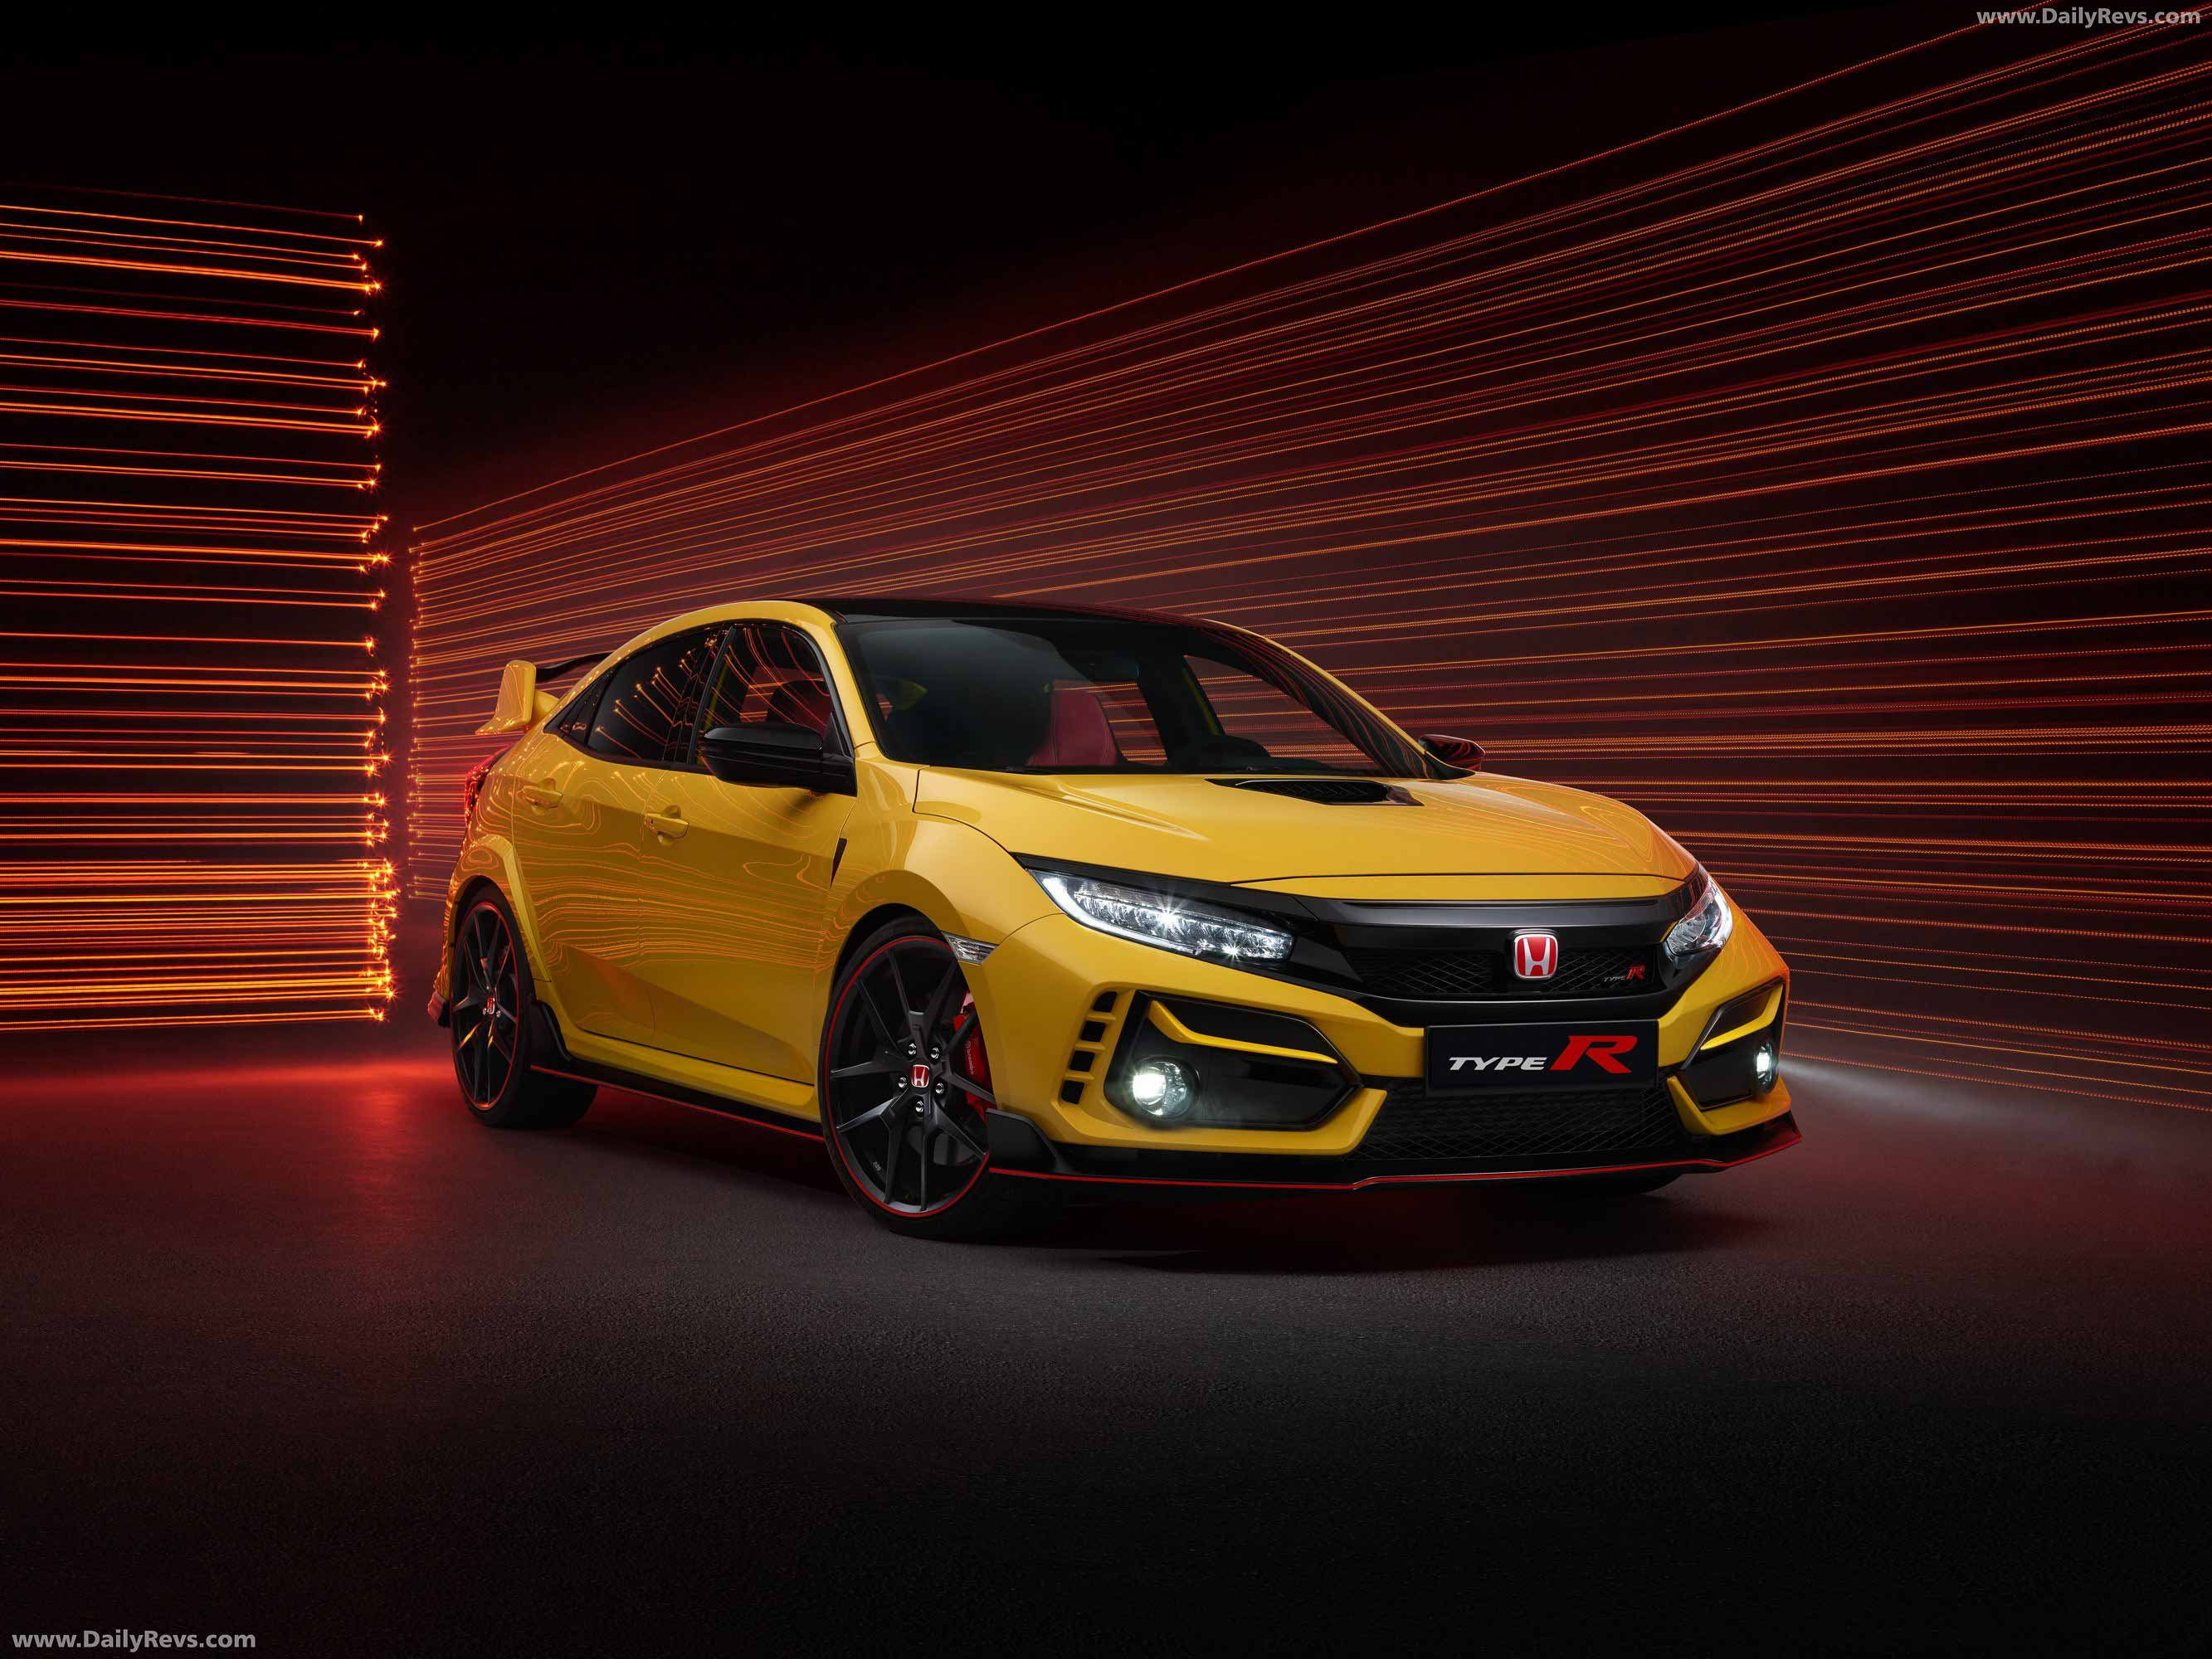 2021 honda civic type r limited edition  hd pictures